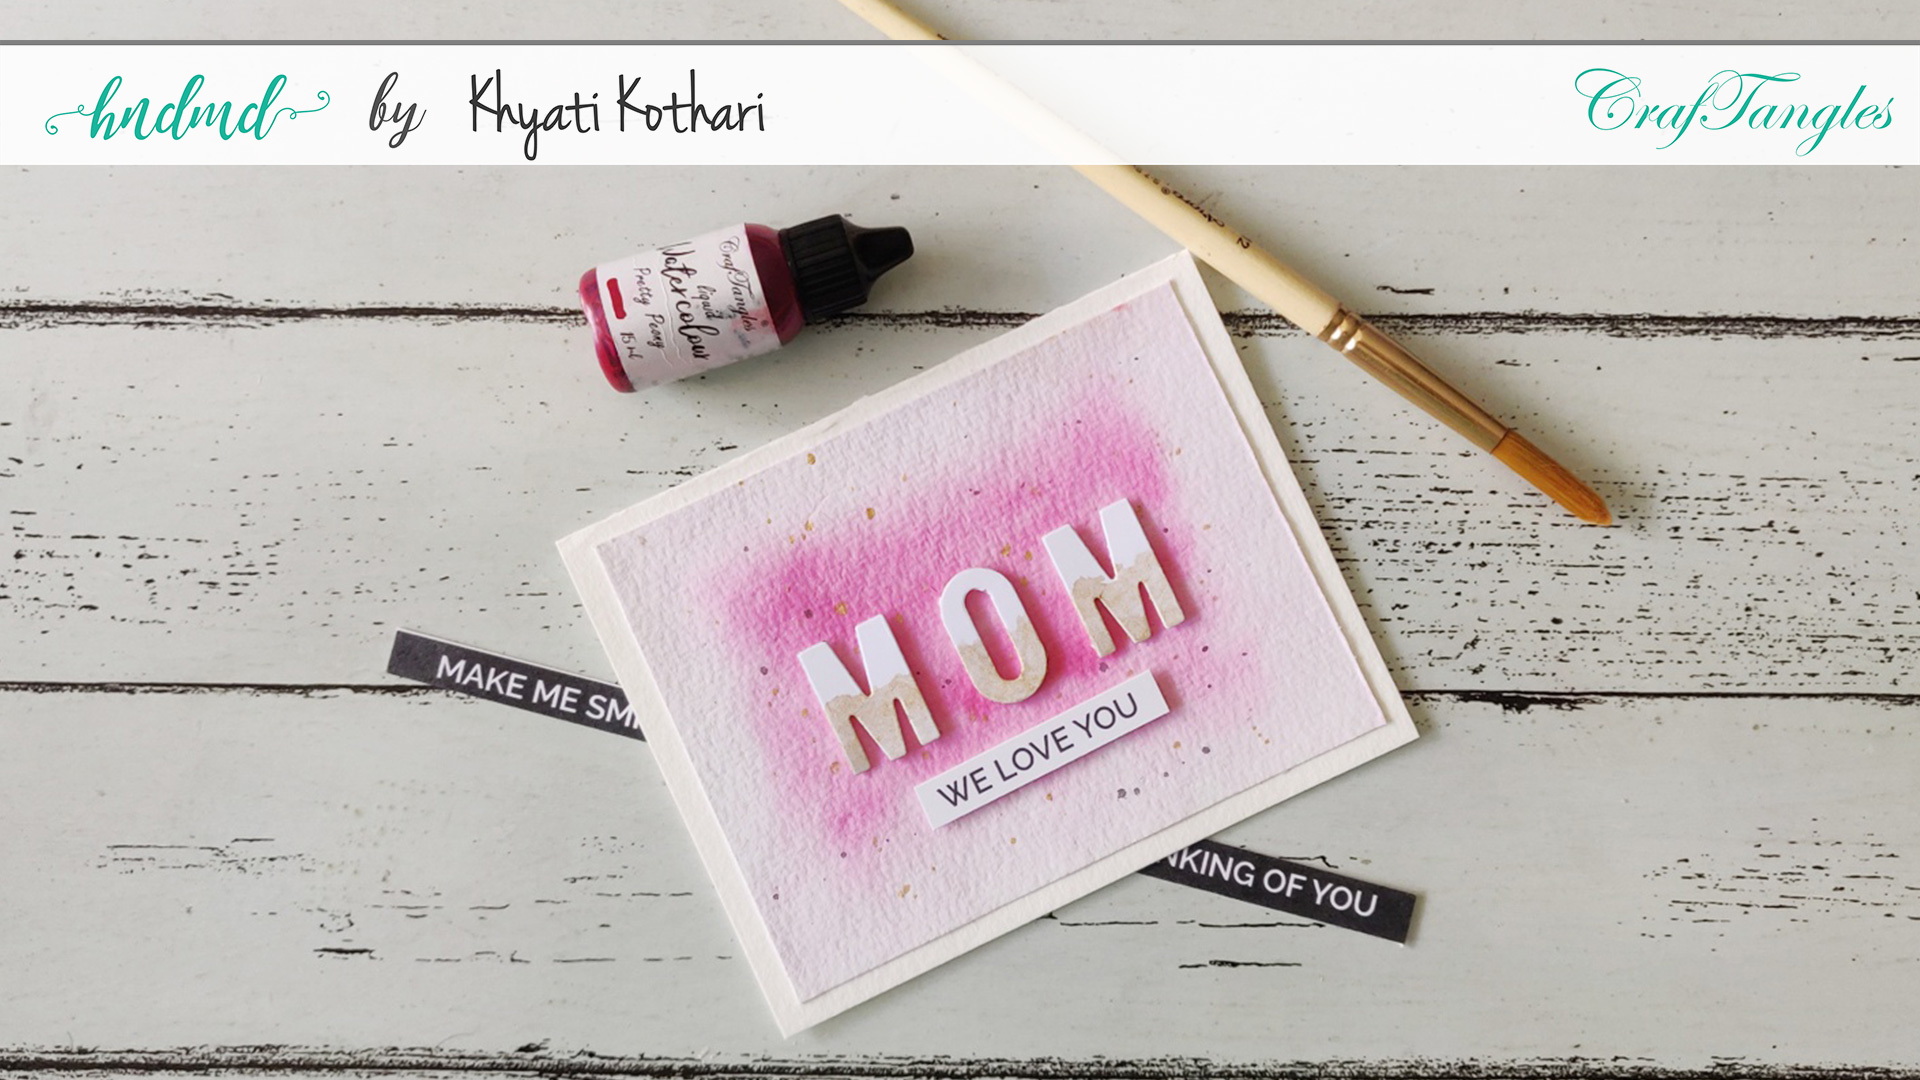 CAS Mothers Day Card 2020 - Cardmaking idea 2